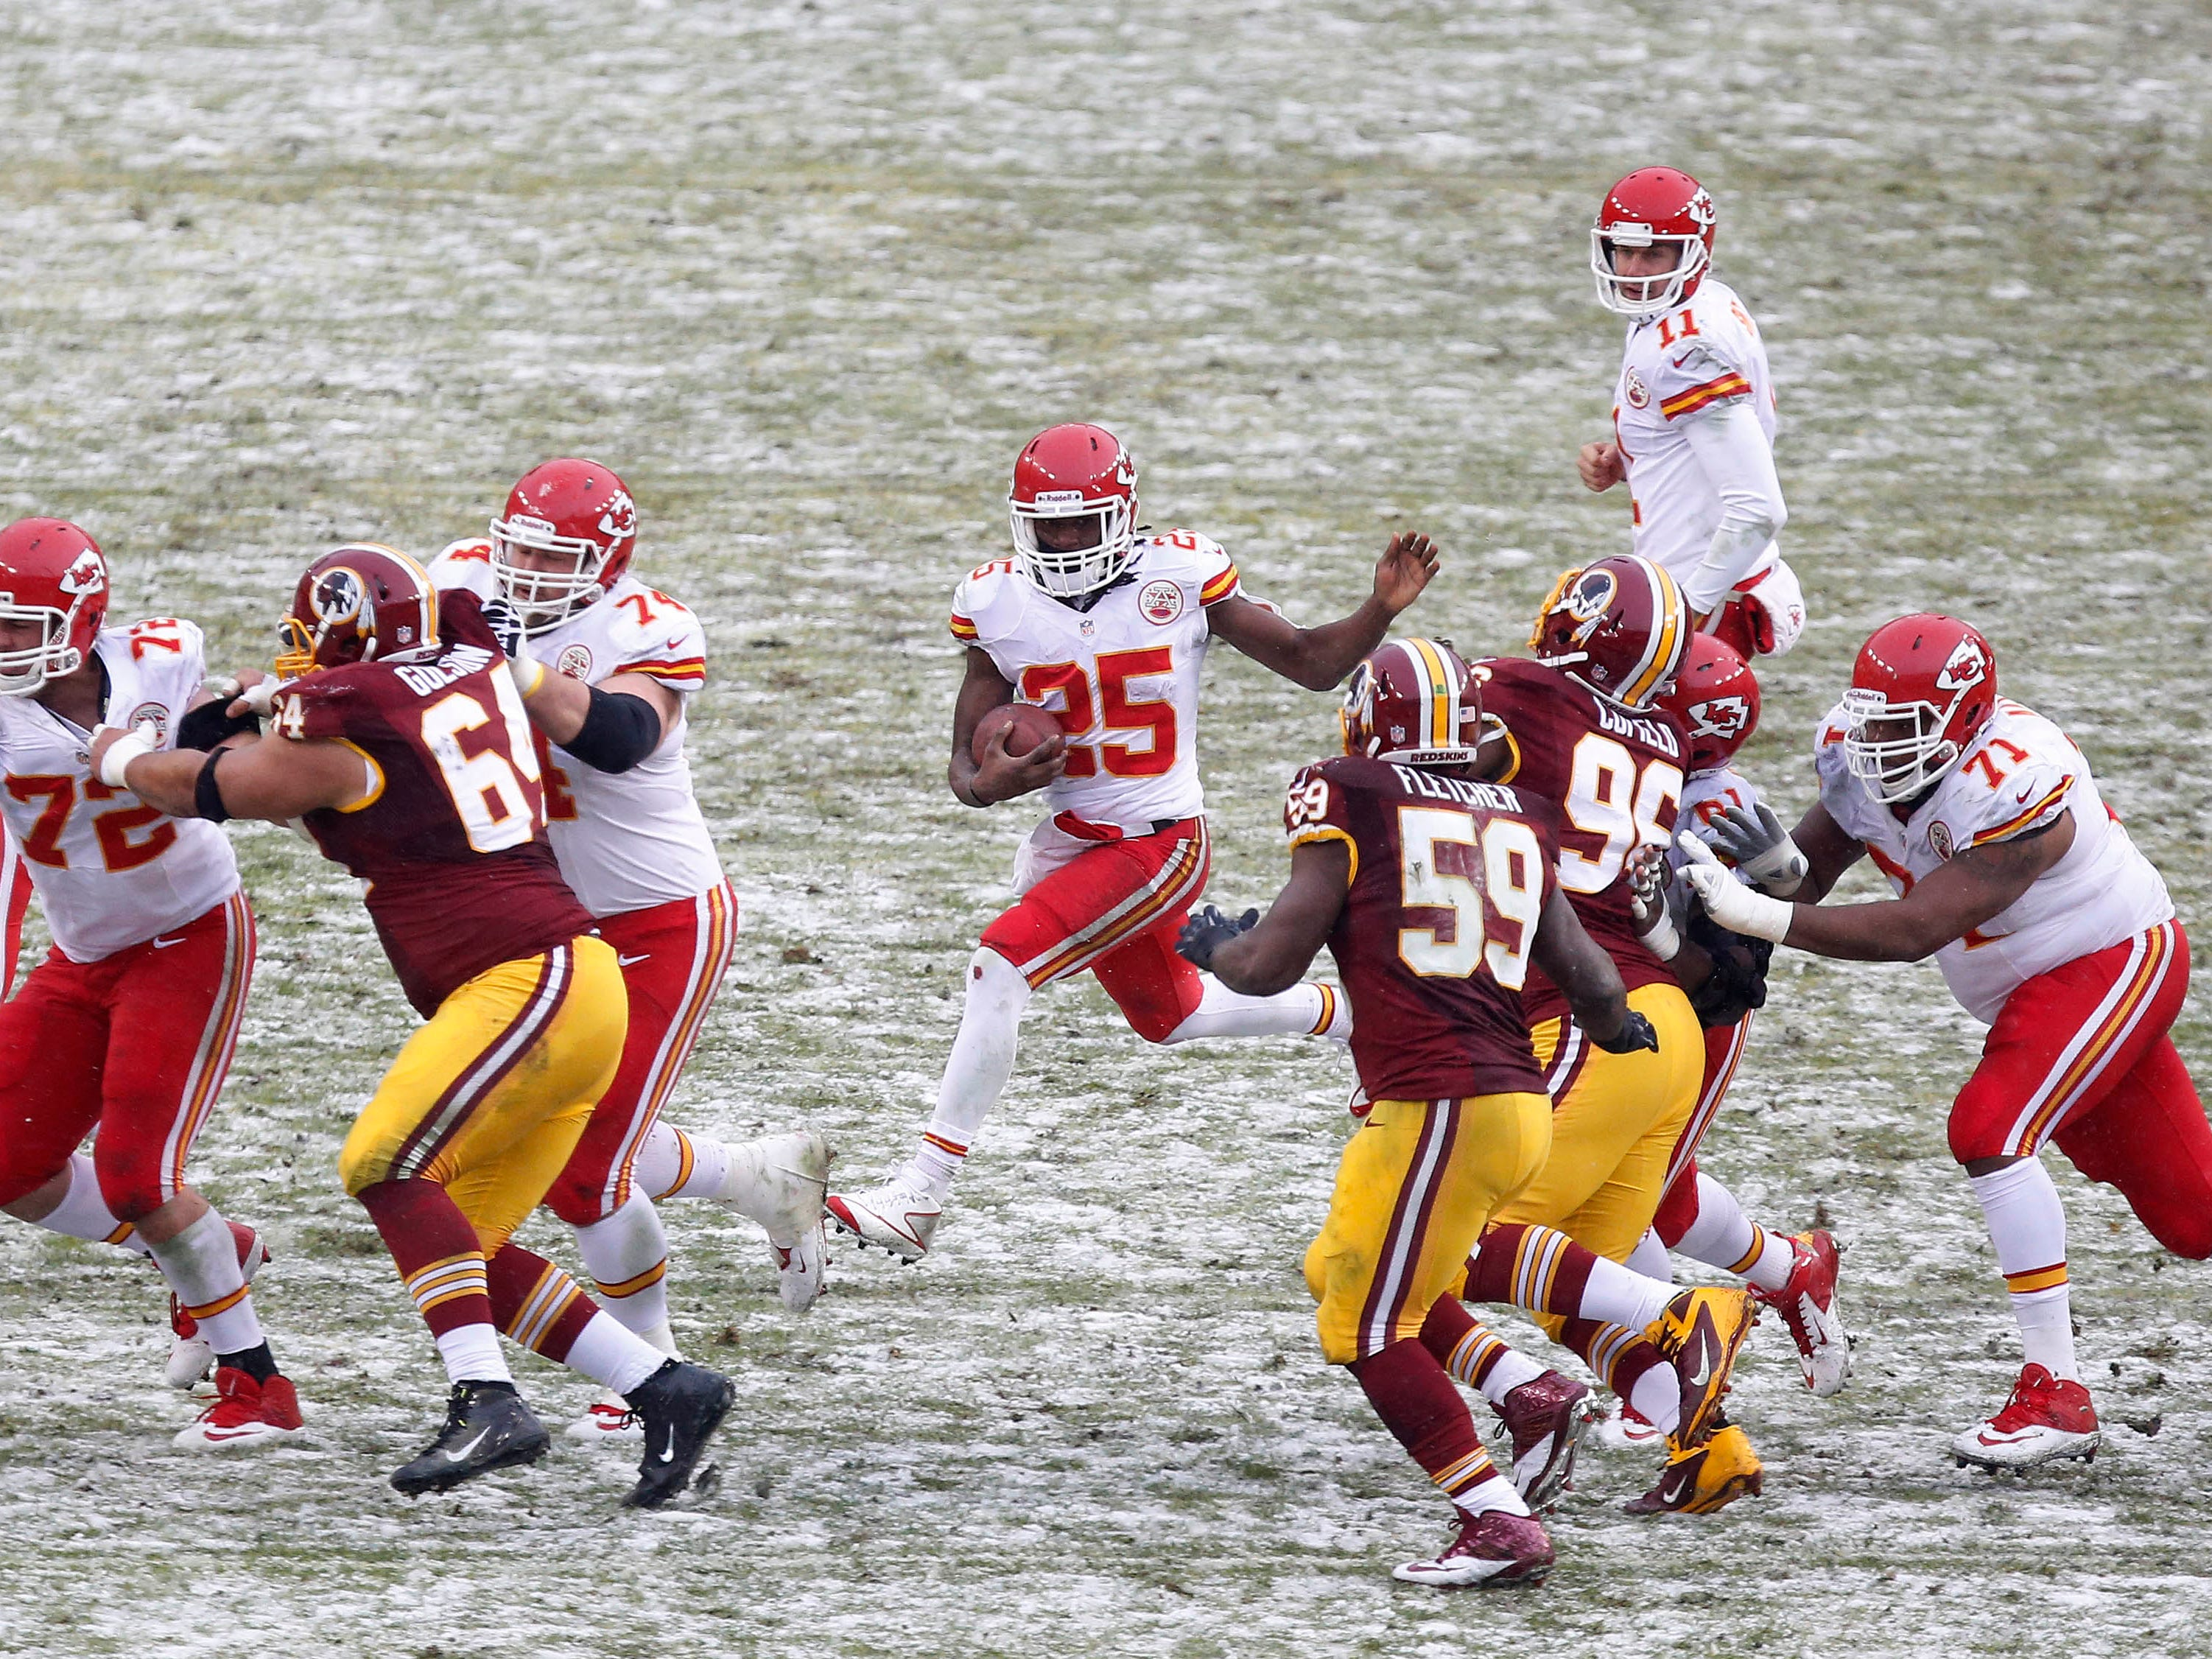 Dec. 8, 2013: Kansas City Chiefs running back Jamaal Charles (25) carries the ball against the Washington Redskins in the snow at FedEx Field. The Chiefs won the game, 45-10.